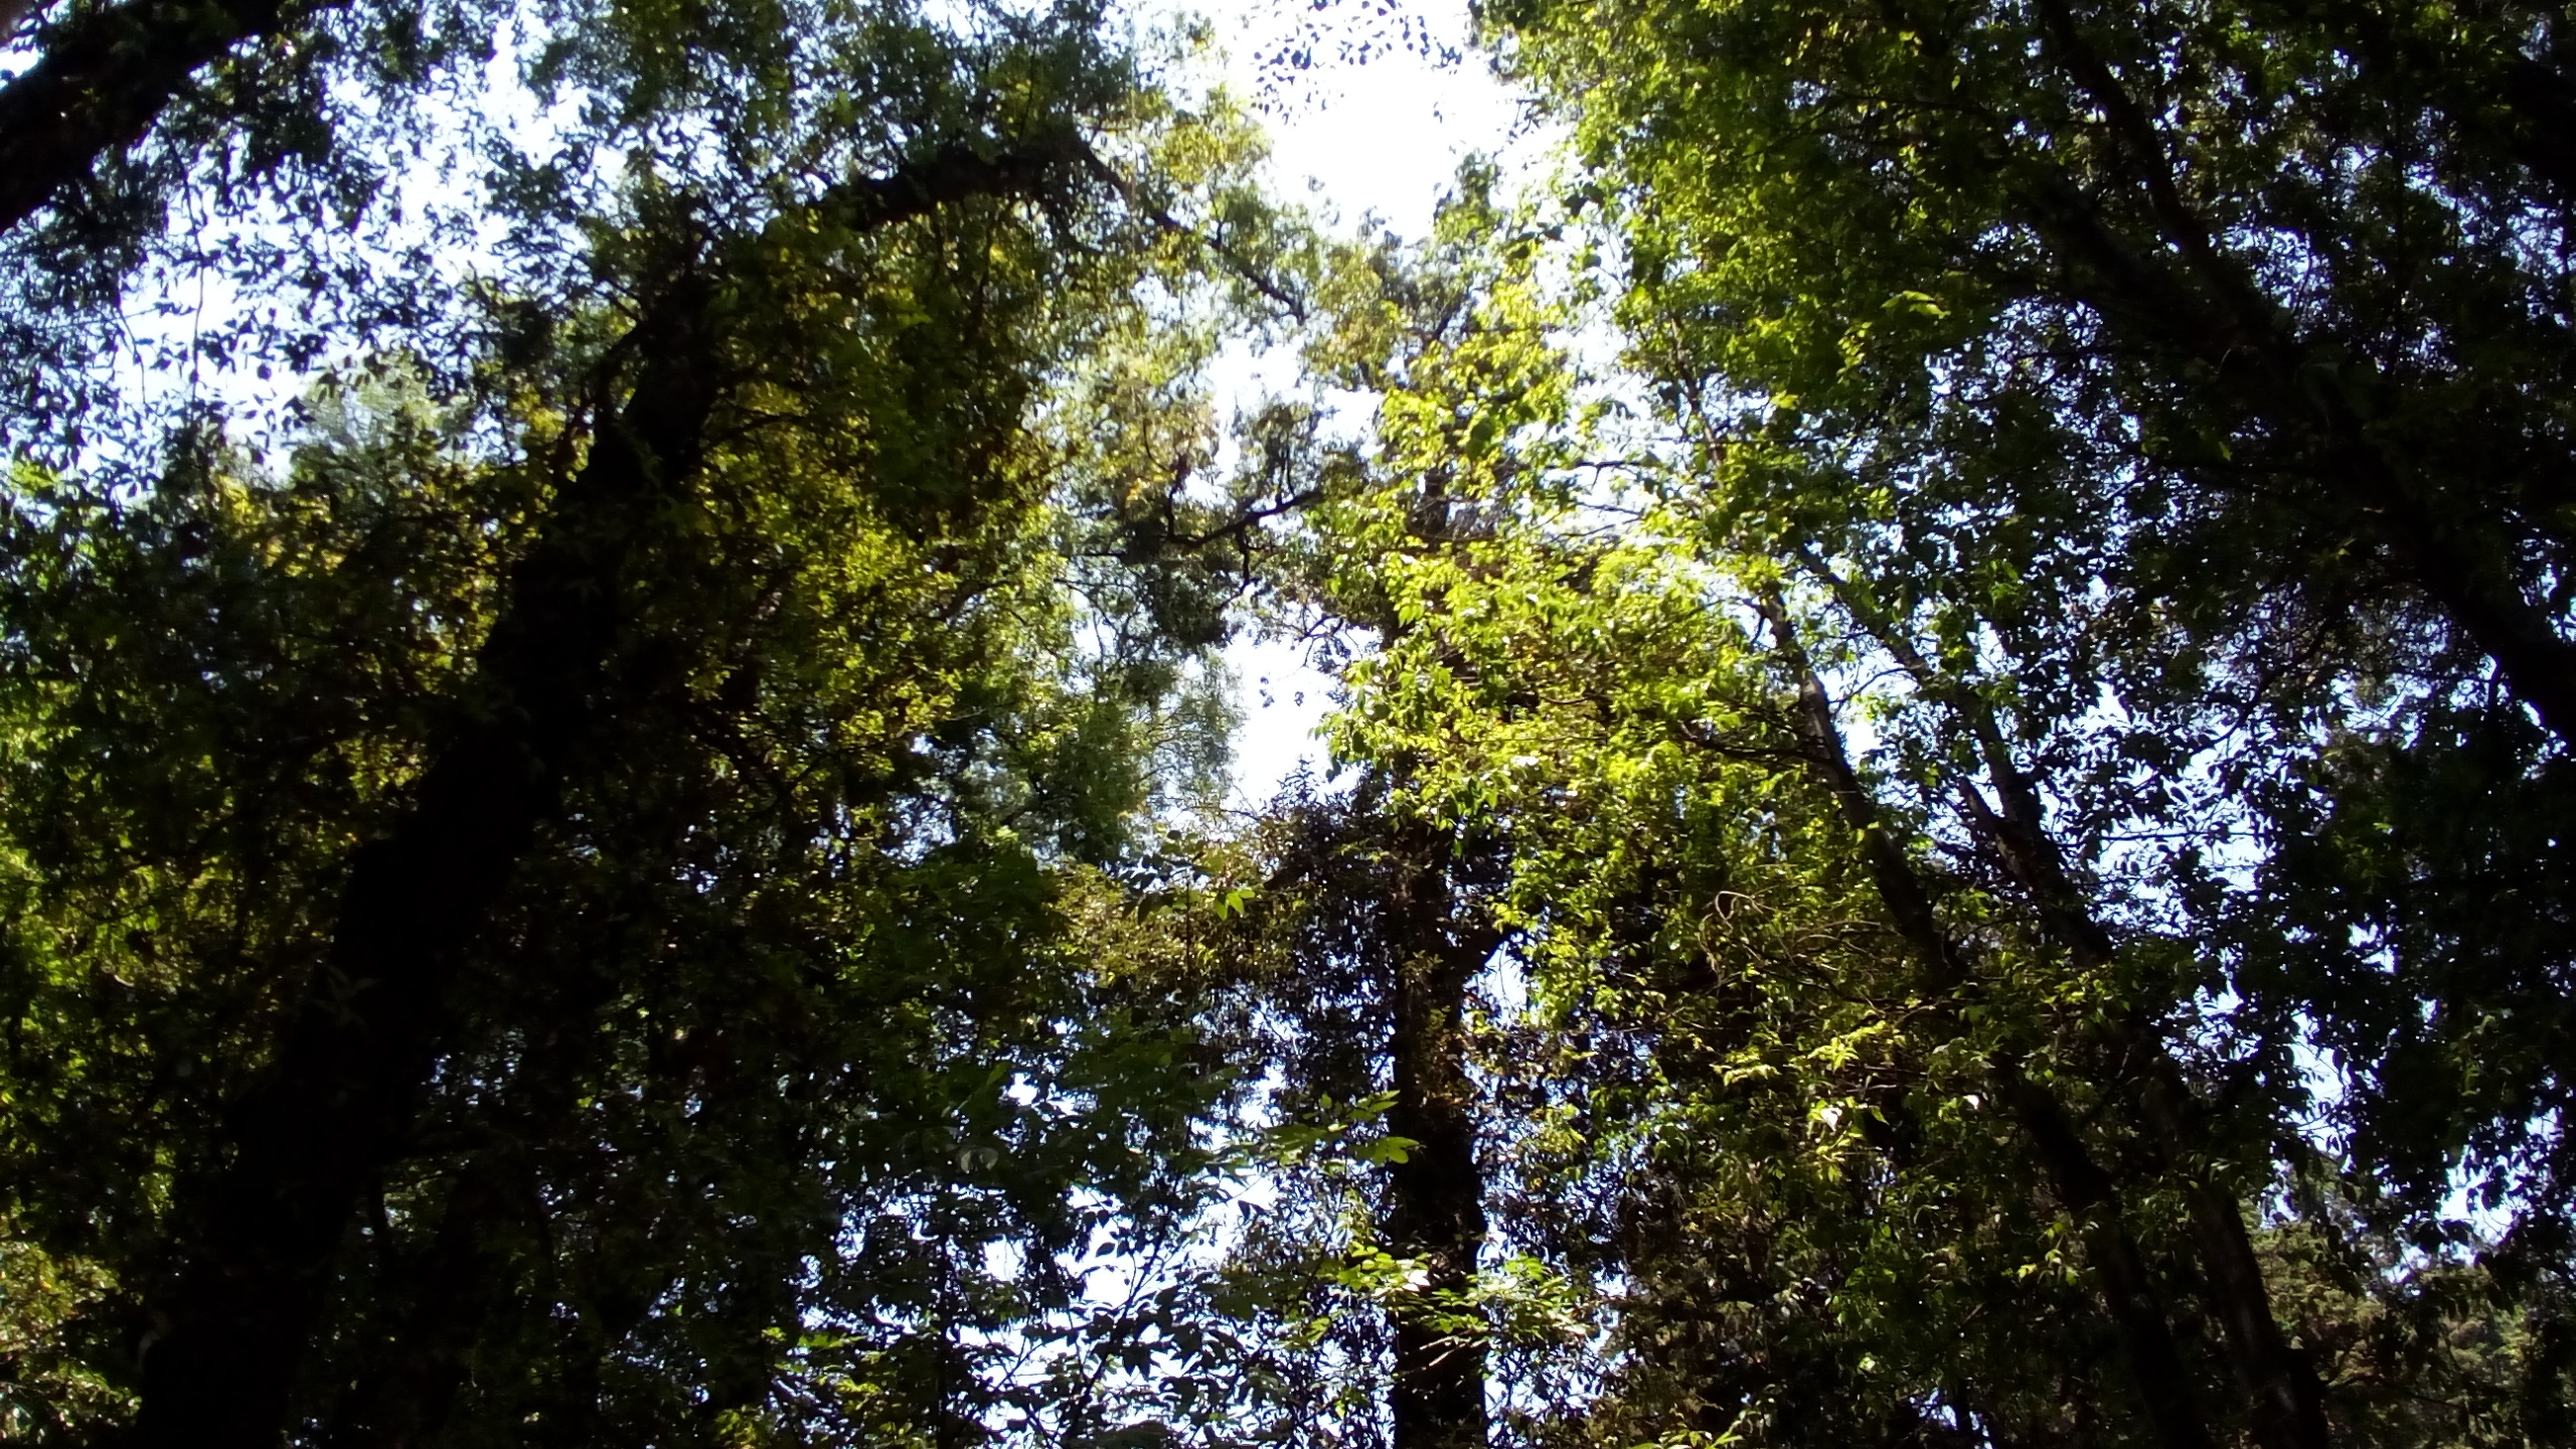 tree, growth, low angle view, nature, no people, forest, beauty in nature, green color, sky, bamboo grove, outdoors, backgrounds, day